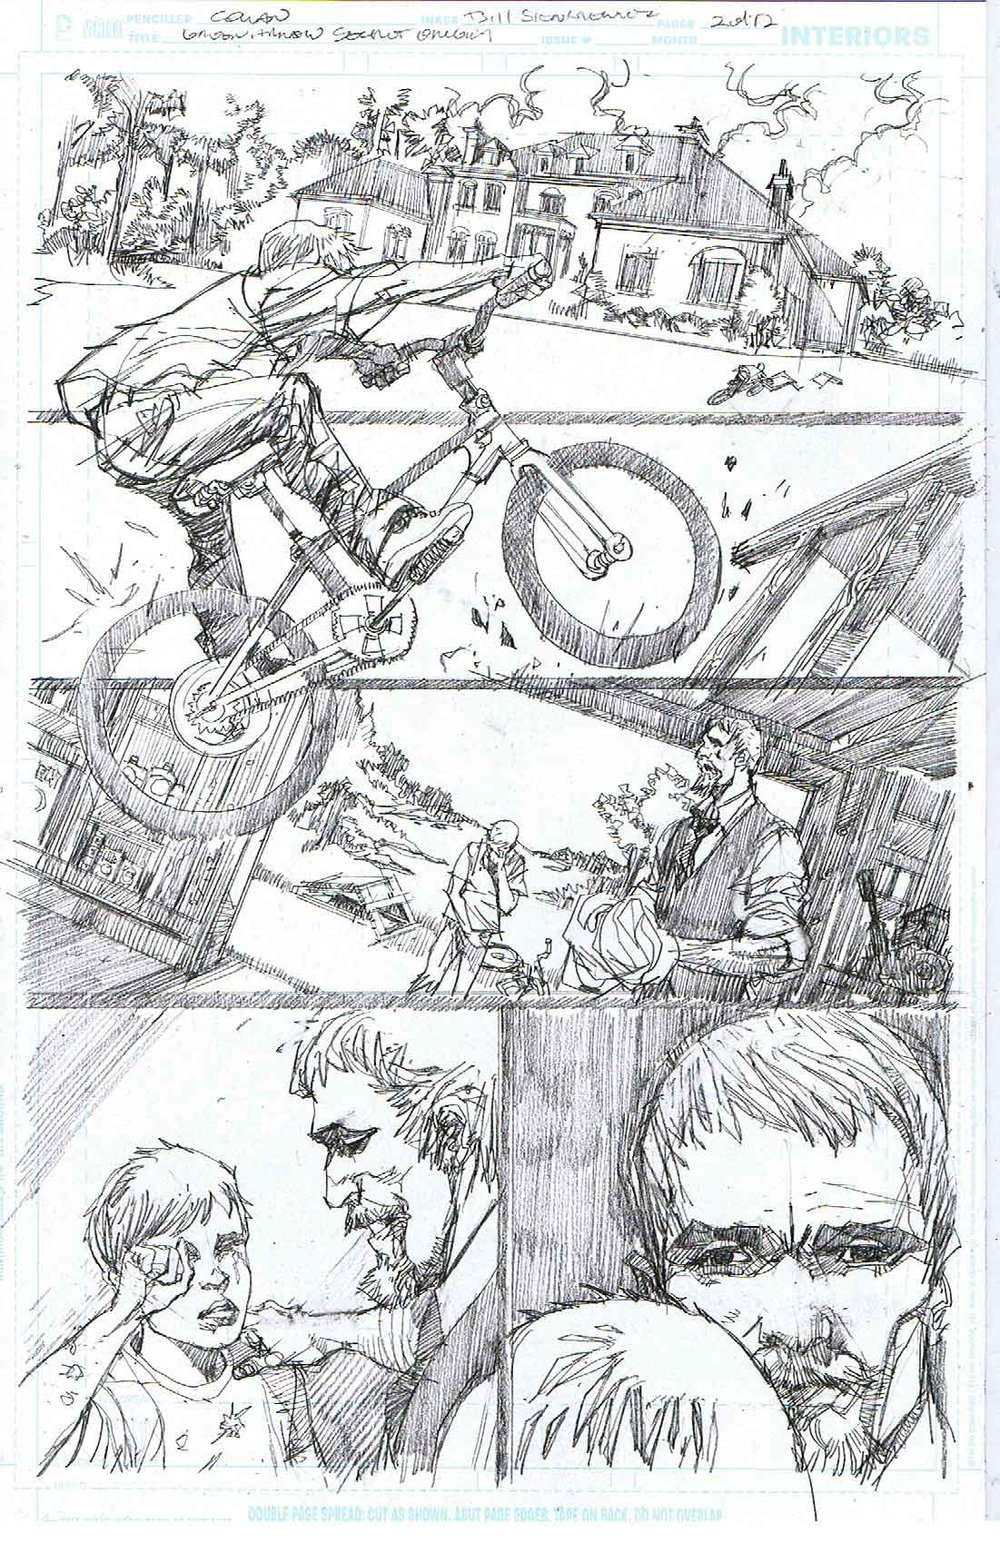 Green Arrow: Secret Origins - Page 2 - Pencils